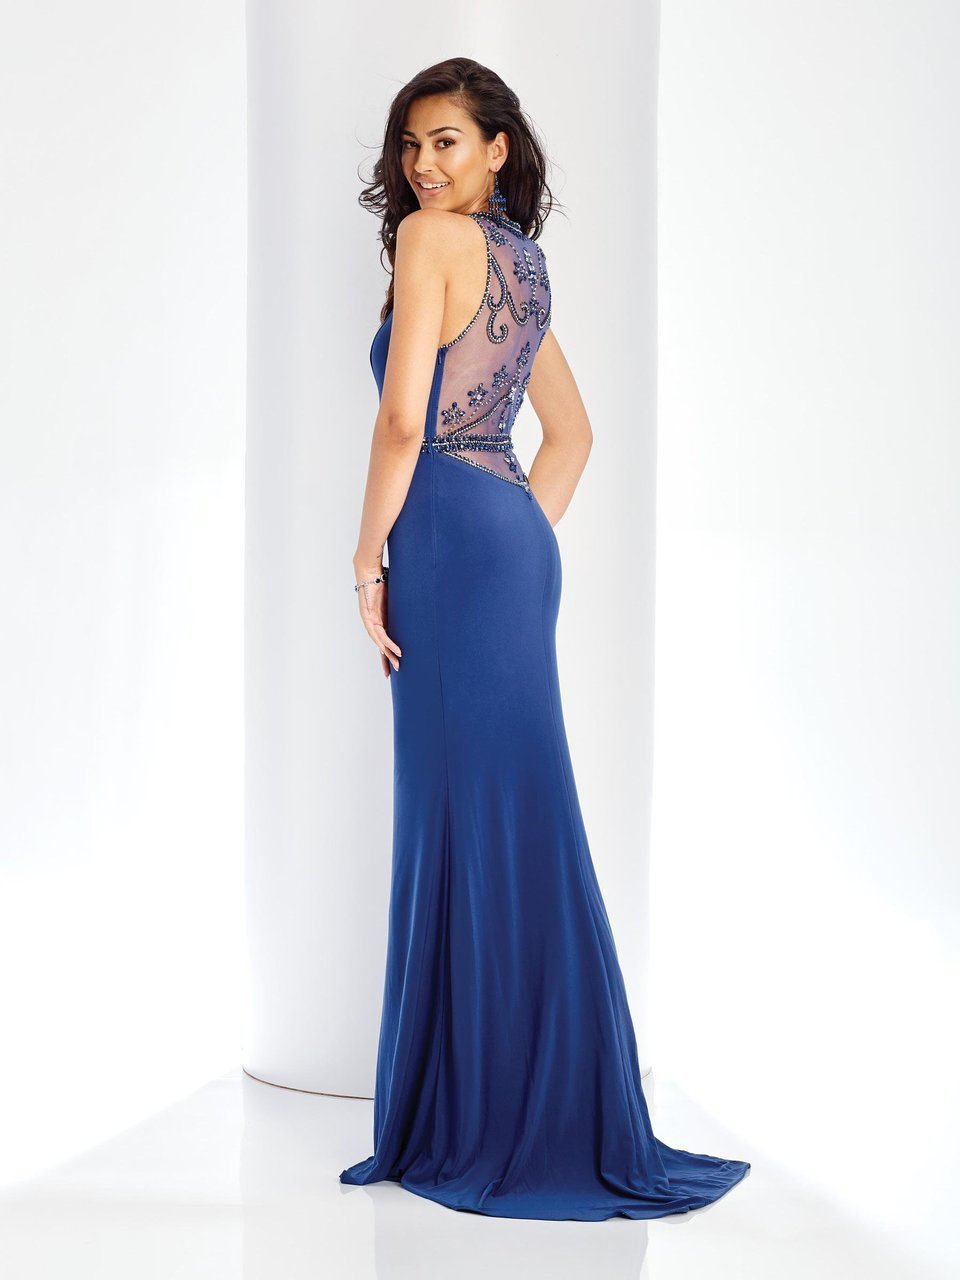 Clarisse - 3511 Bejeweled High Illusion Halter Gown in Blue